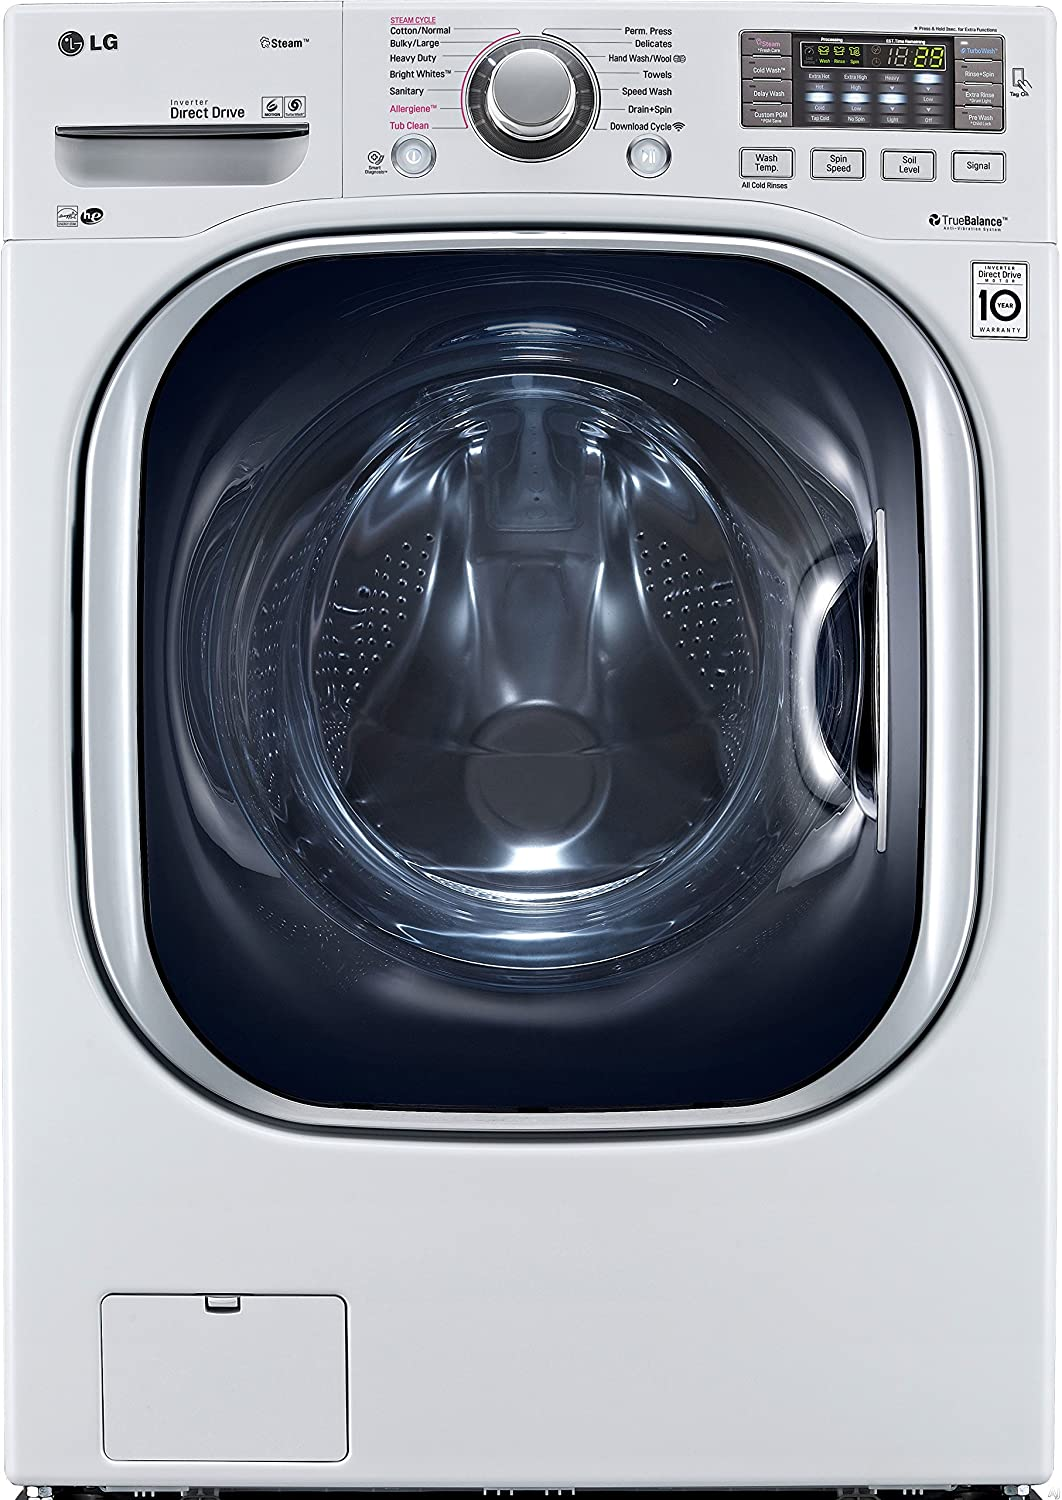 LG WM4270HWA TurboWash 4.5 Cu. Ft. White Stackable With Steam Cycle Front Load Washer - Energy Star